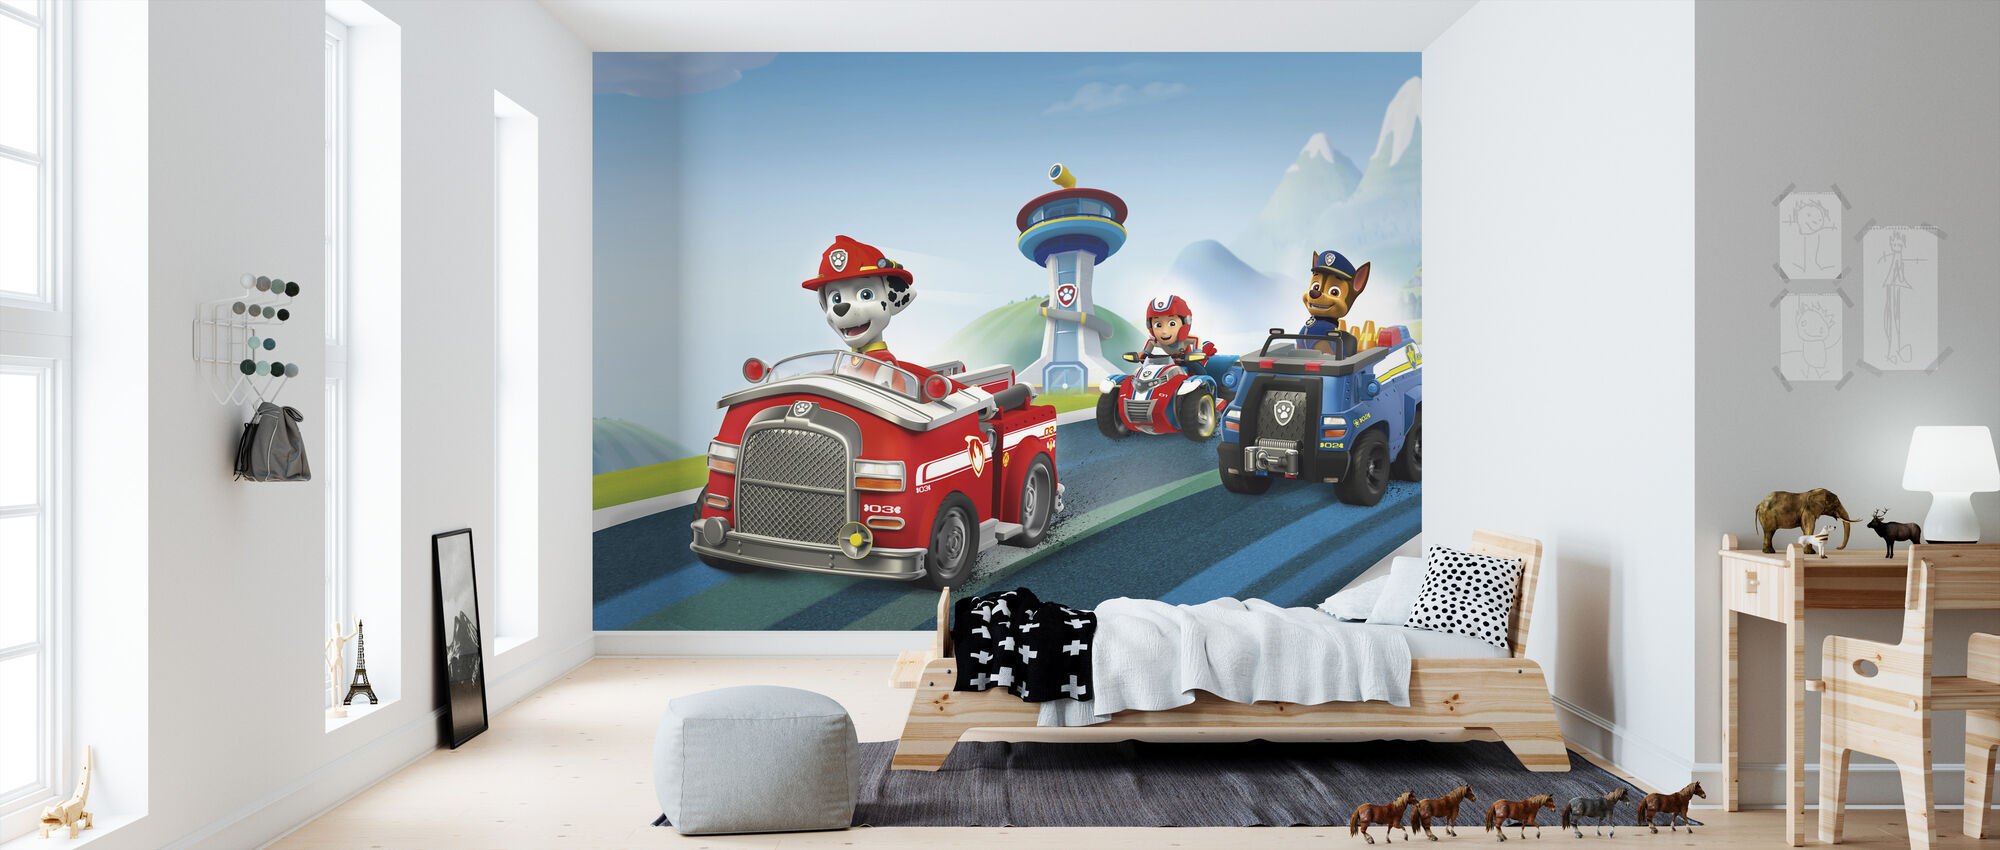 paw patrol ready for action fototapeten online photowall. Black Bedroom Furniture Sets. Home Design Ideas